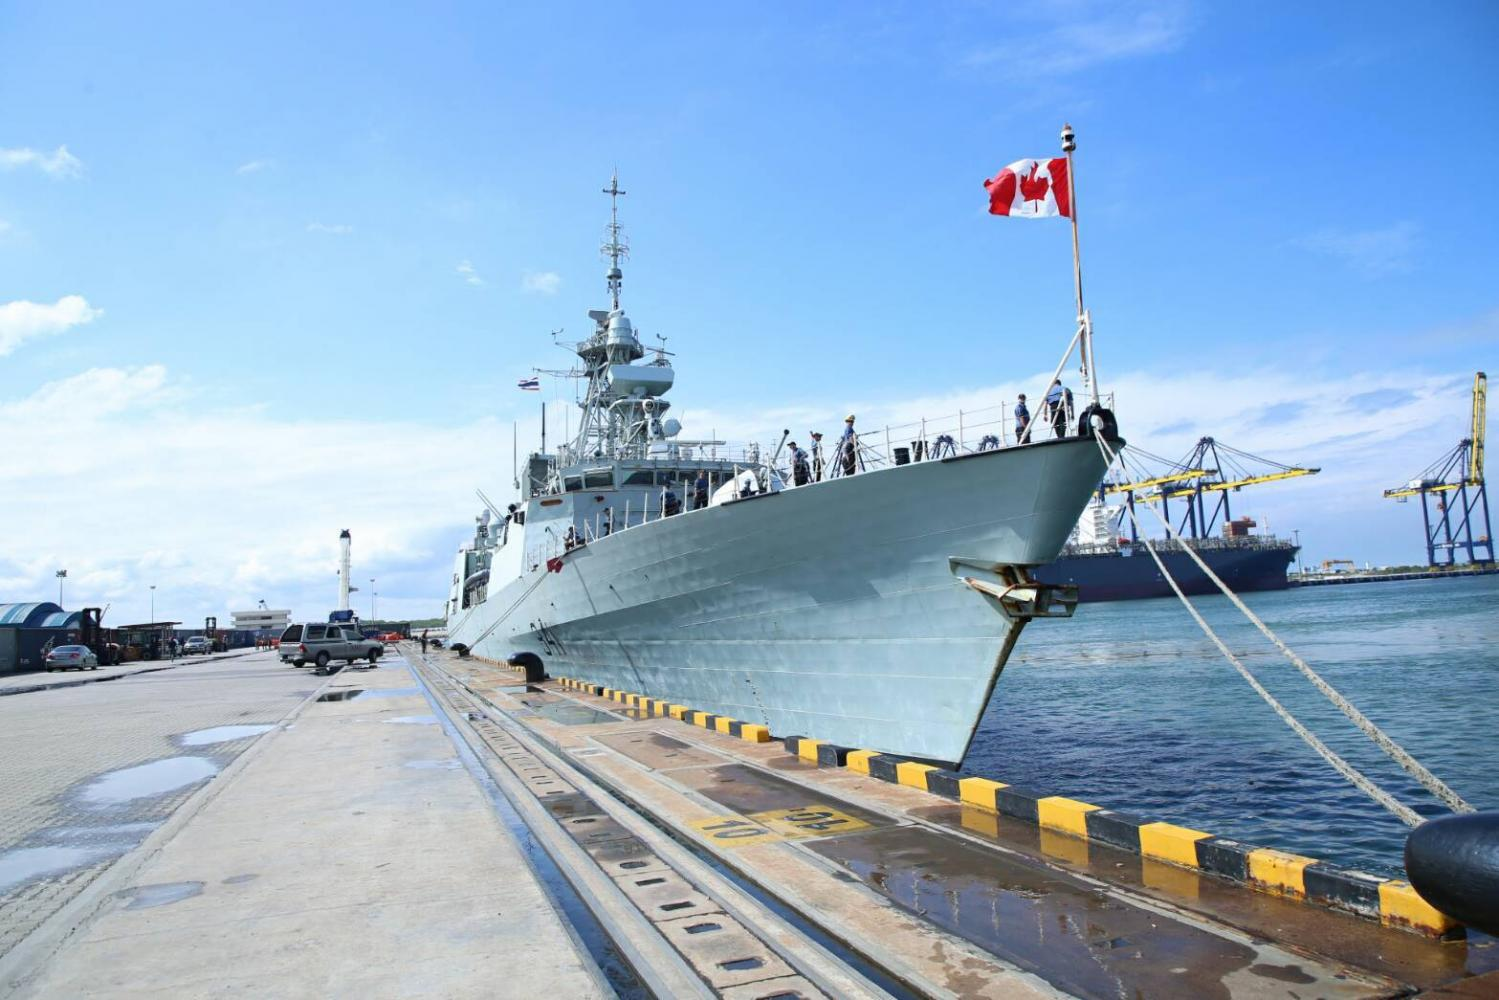 One member of the Canadian Armed Forces missing from HMCS Winnipeg